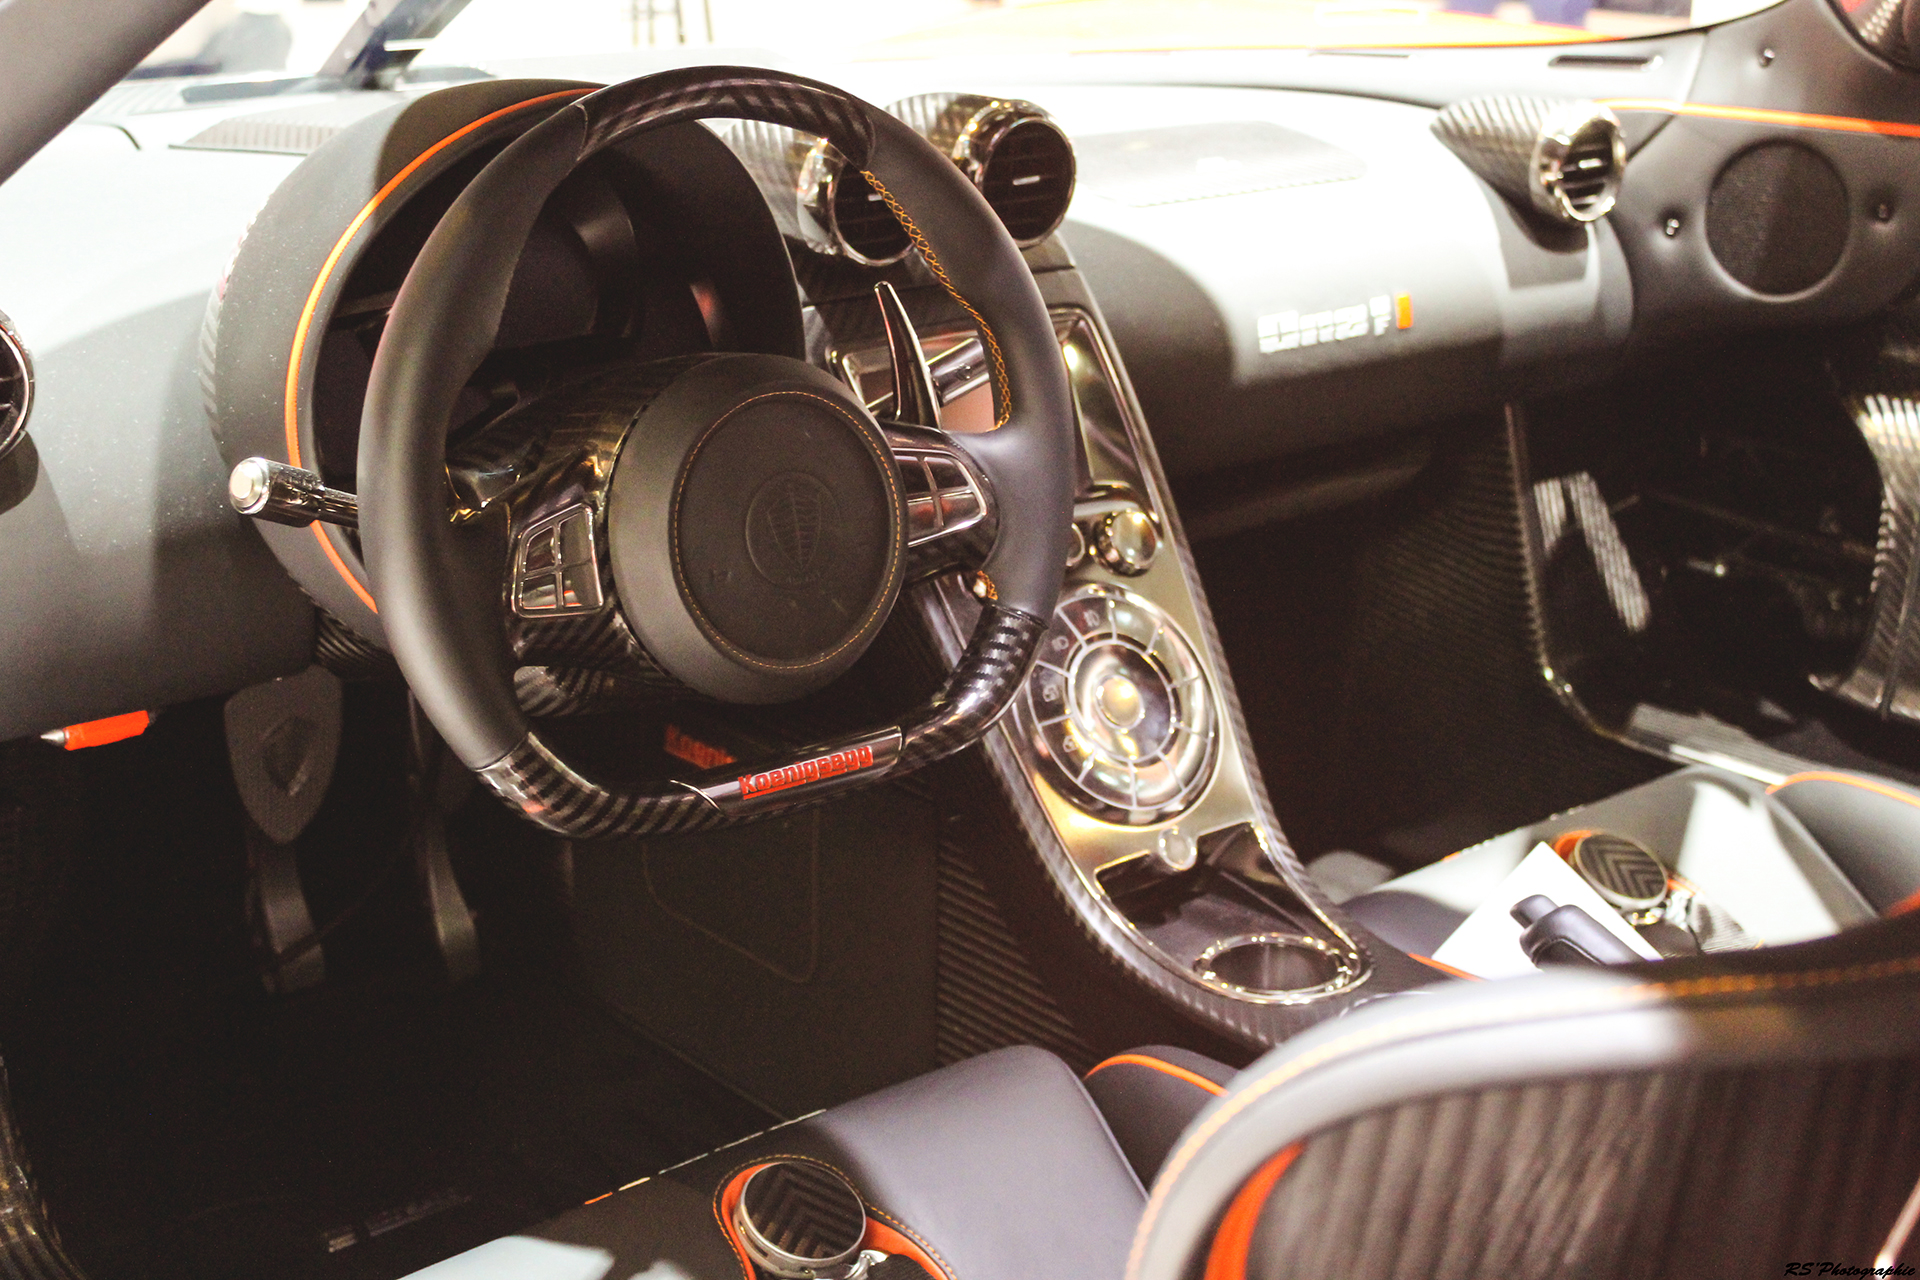 Koenigsegg Agera Final One of 1 - interior - Geneva 2016 - Arnaud Demasier RS Photographie